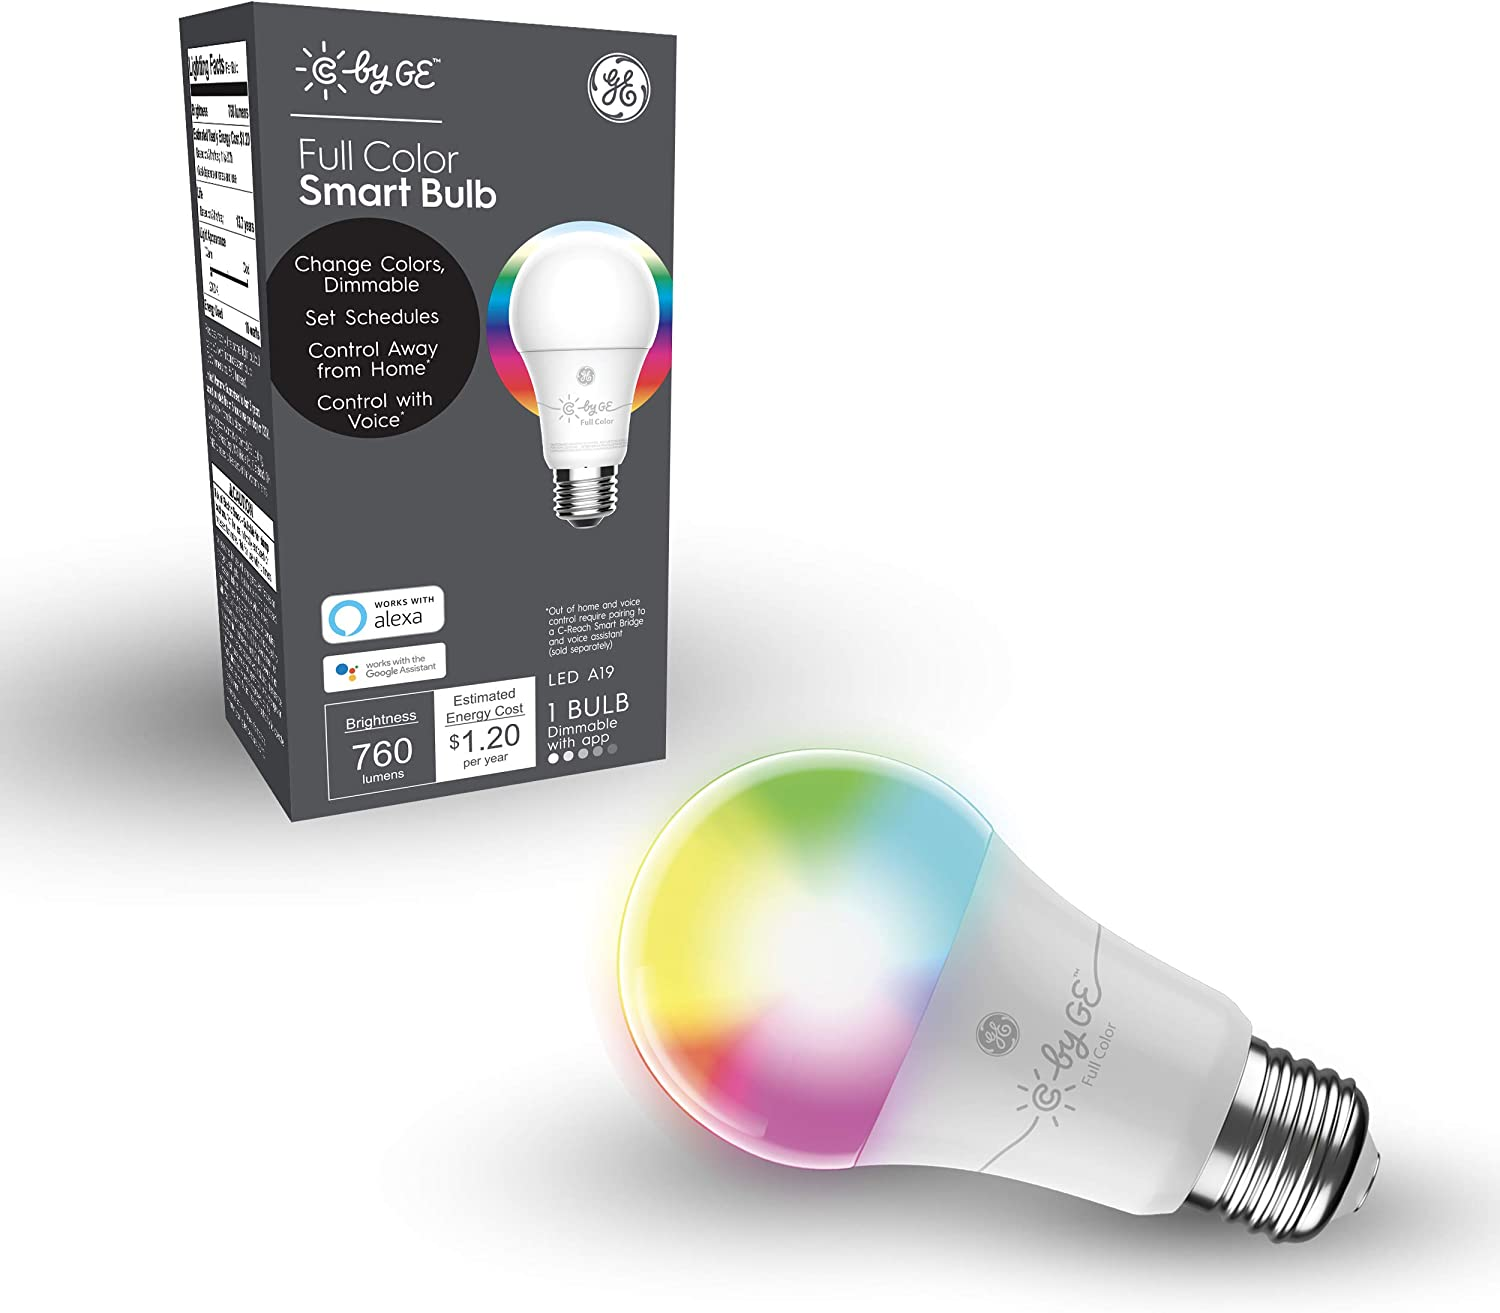 C by GE A19 LED Smart Light Bulb - Full Color Changing Light Bulb, 1-Pack, Works with Amazon Alexa and Google Home, Bluetooth Light Bulb